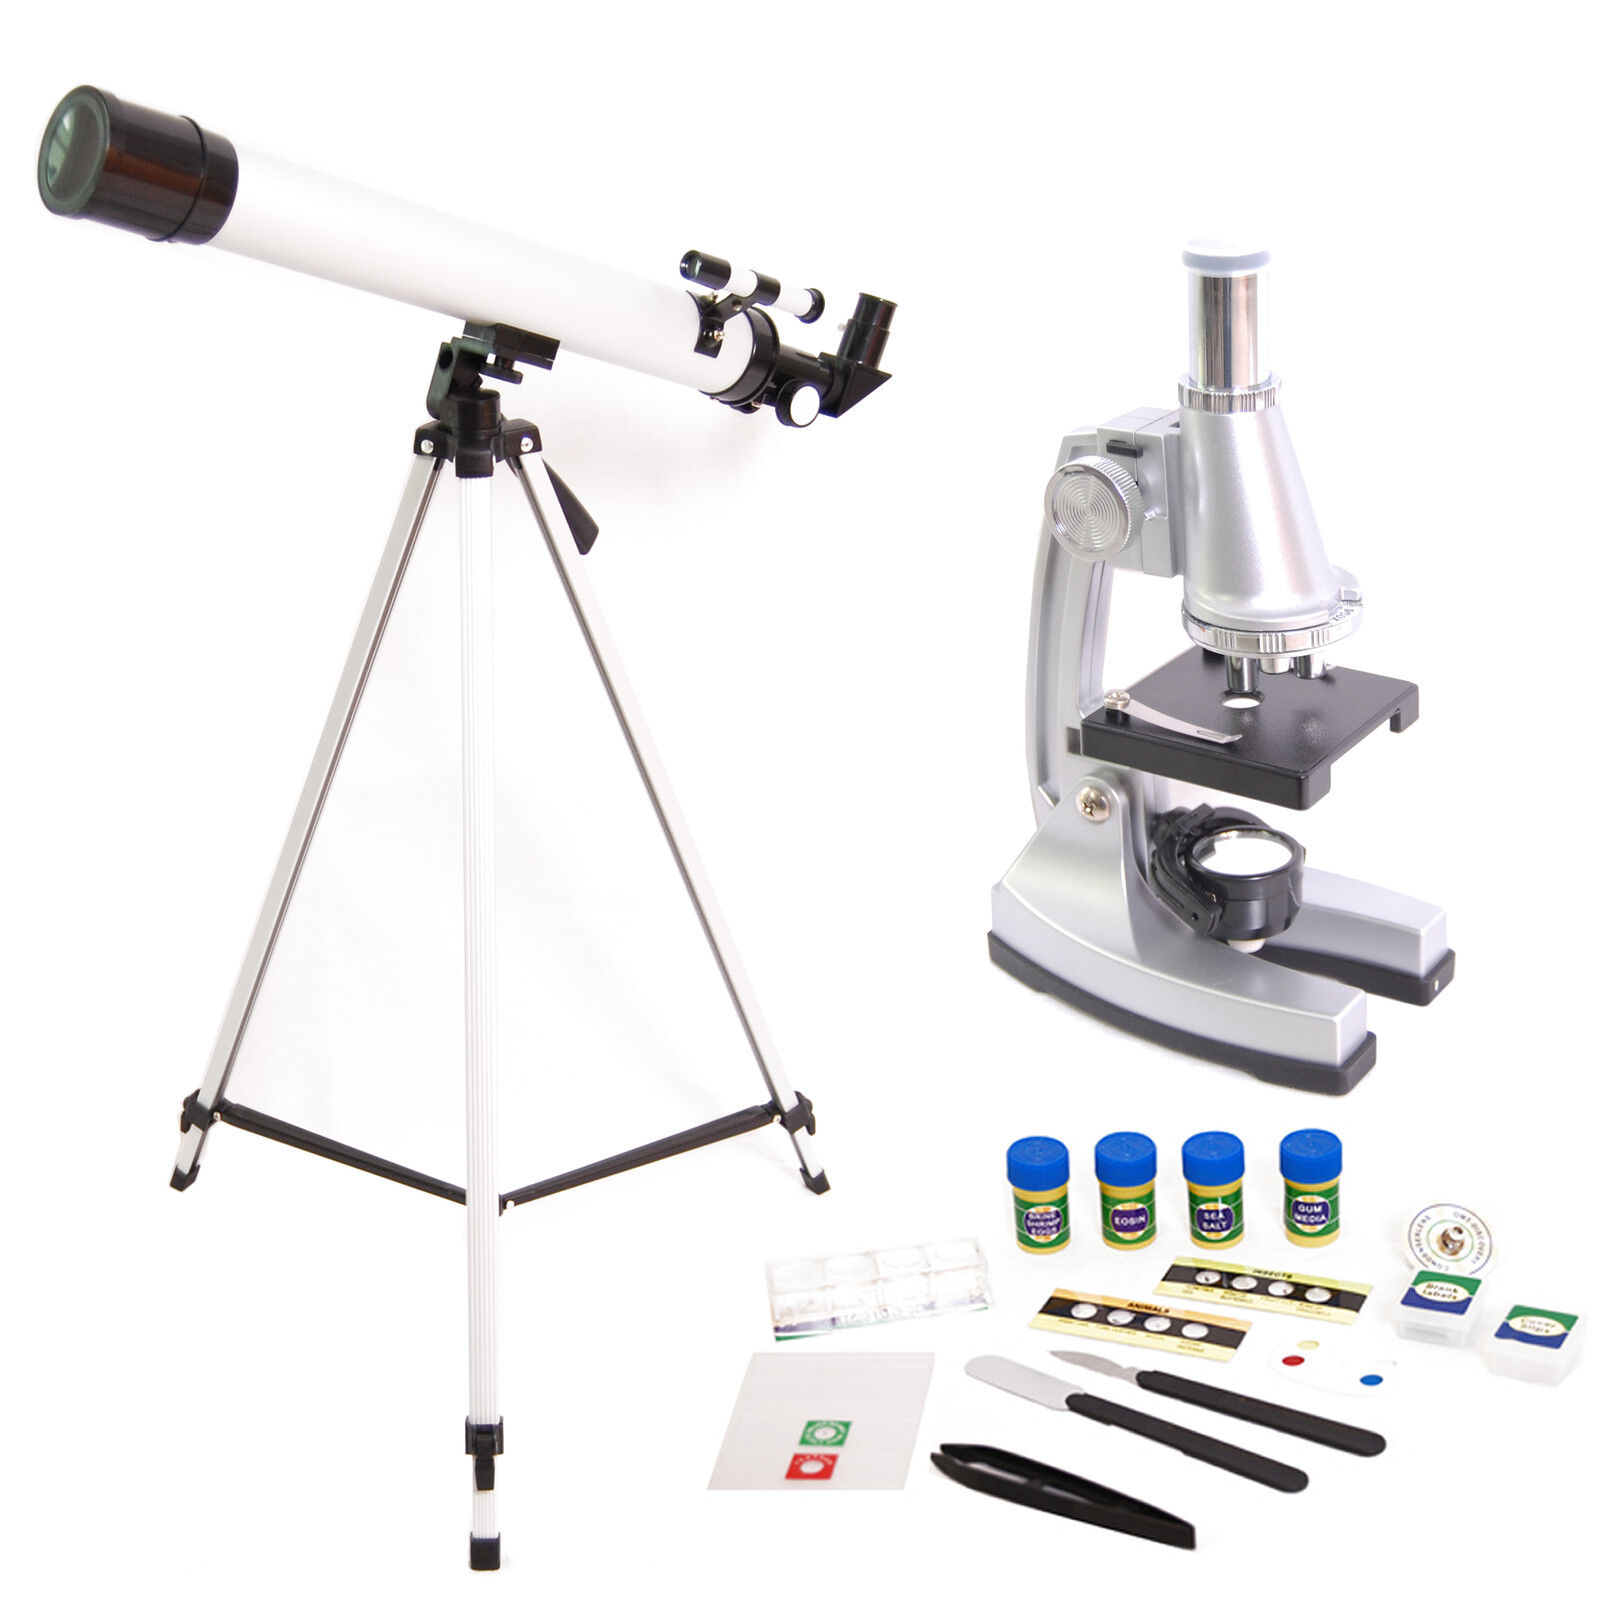 DynaSun TWMP0406 Telescope and Microscope 900x Set with Tripod & Accessories